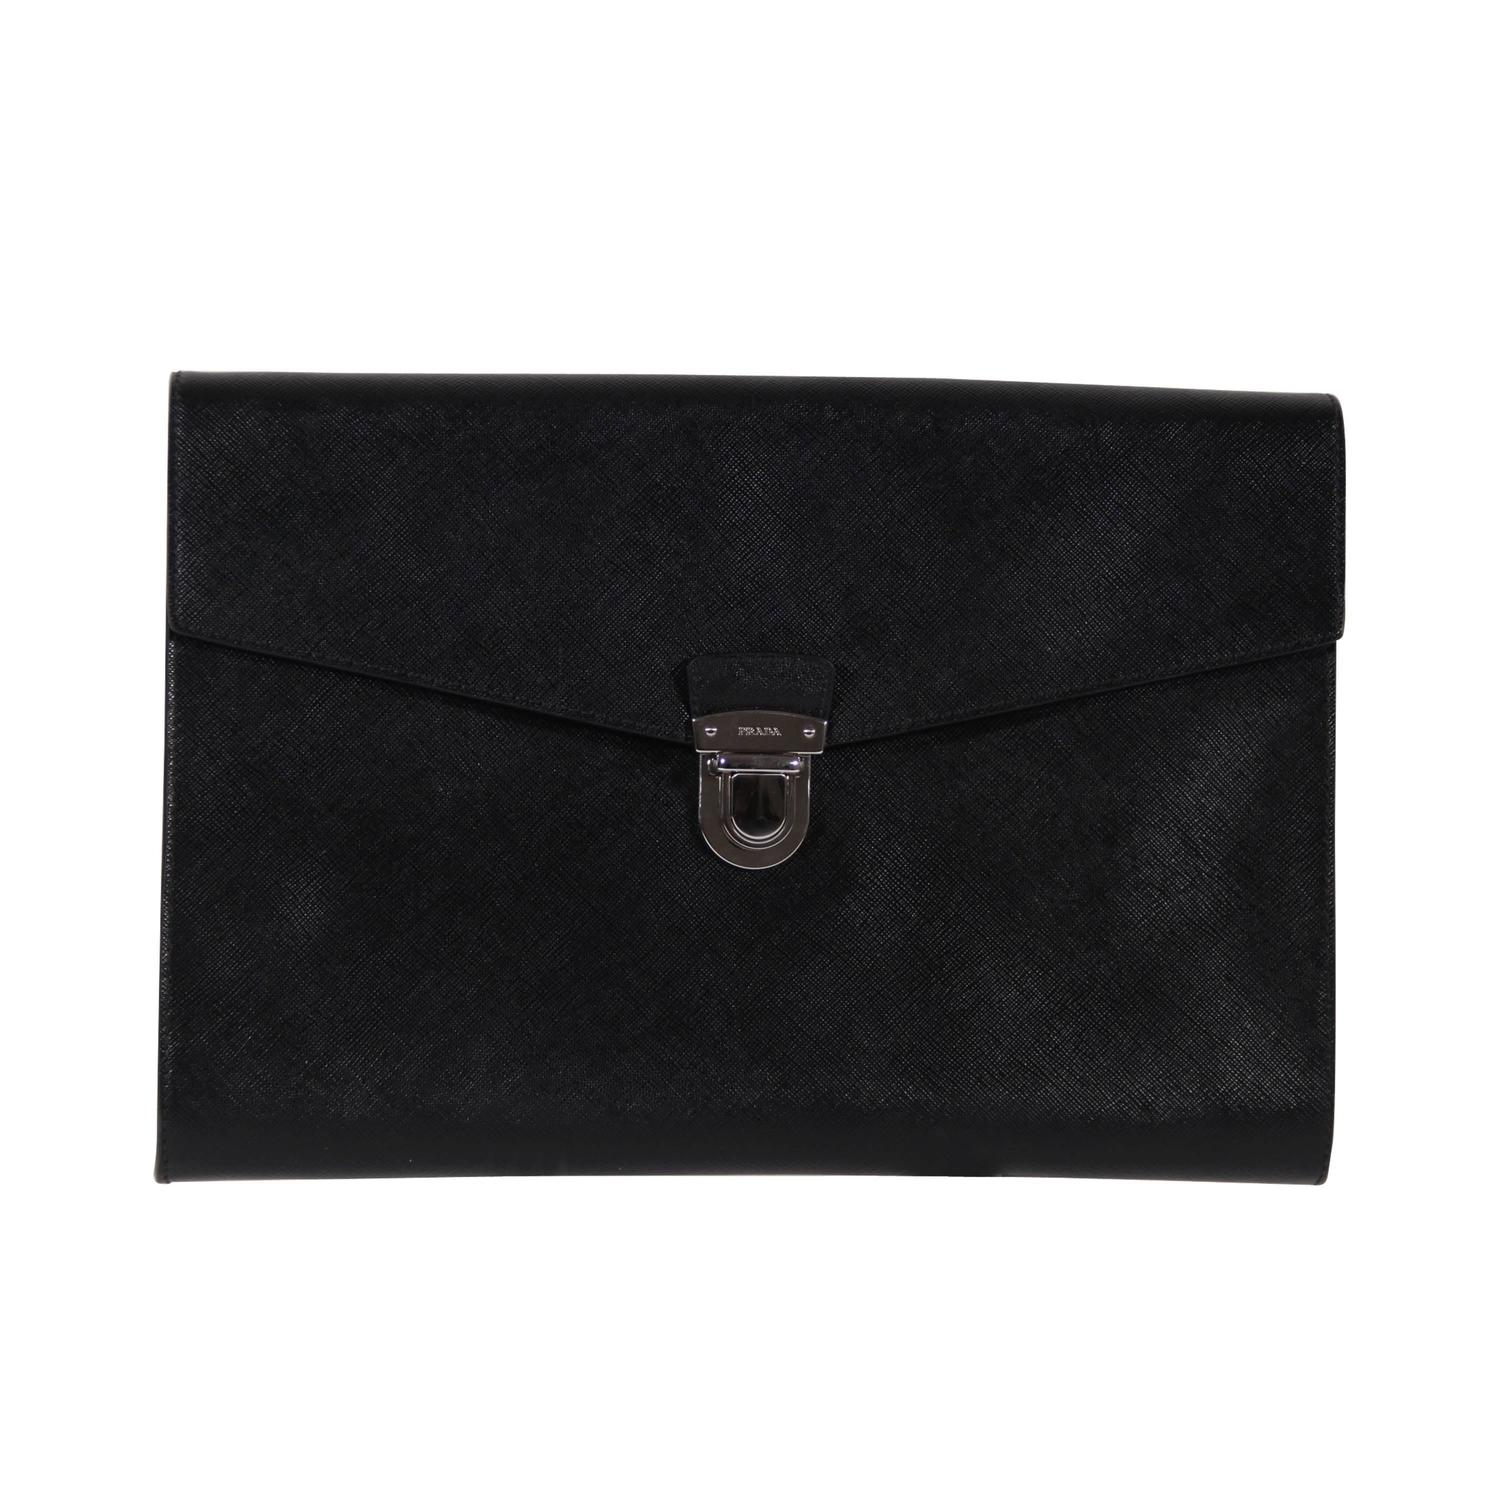 prada black fur clutch bag